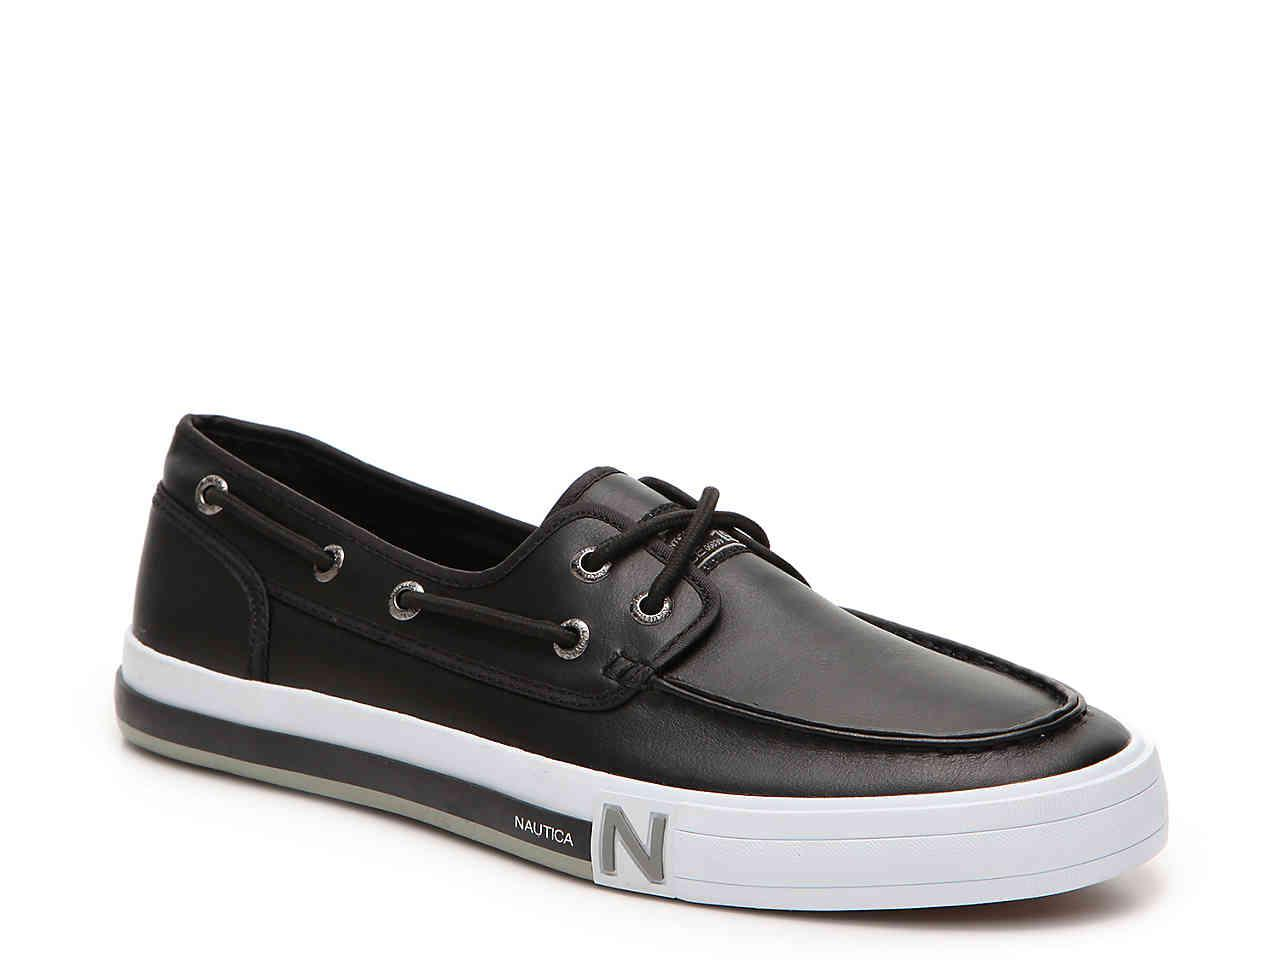 f2ffff8ca40 Lyst - Nautica Spinnaker Boat Shoe in Black